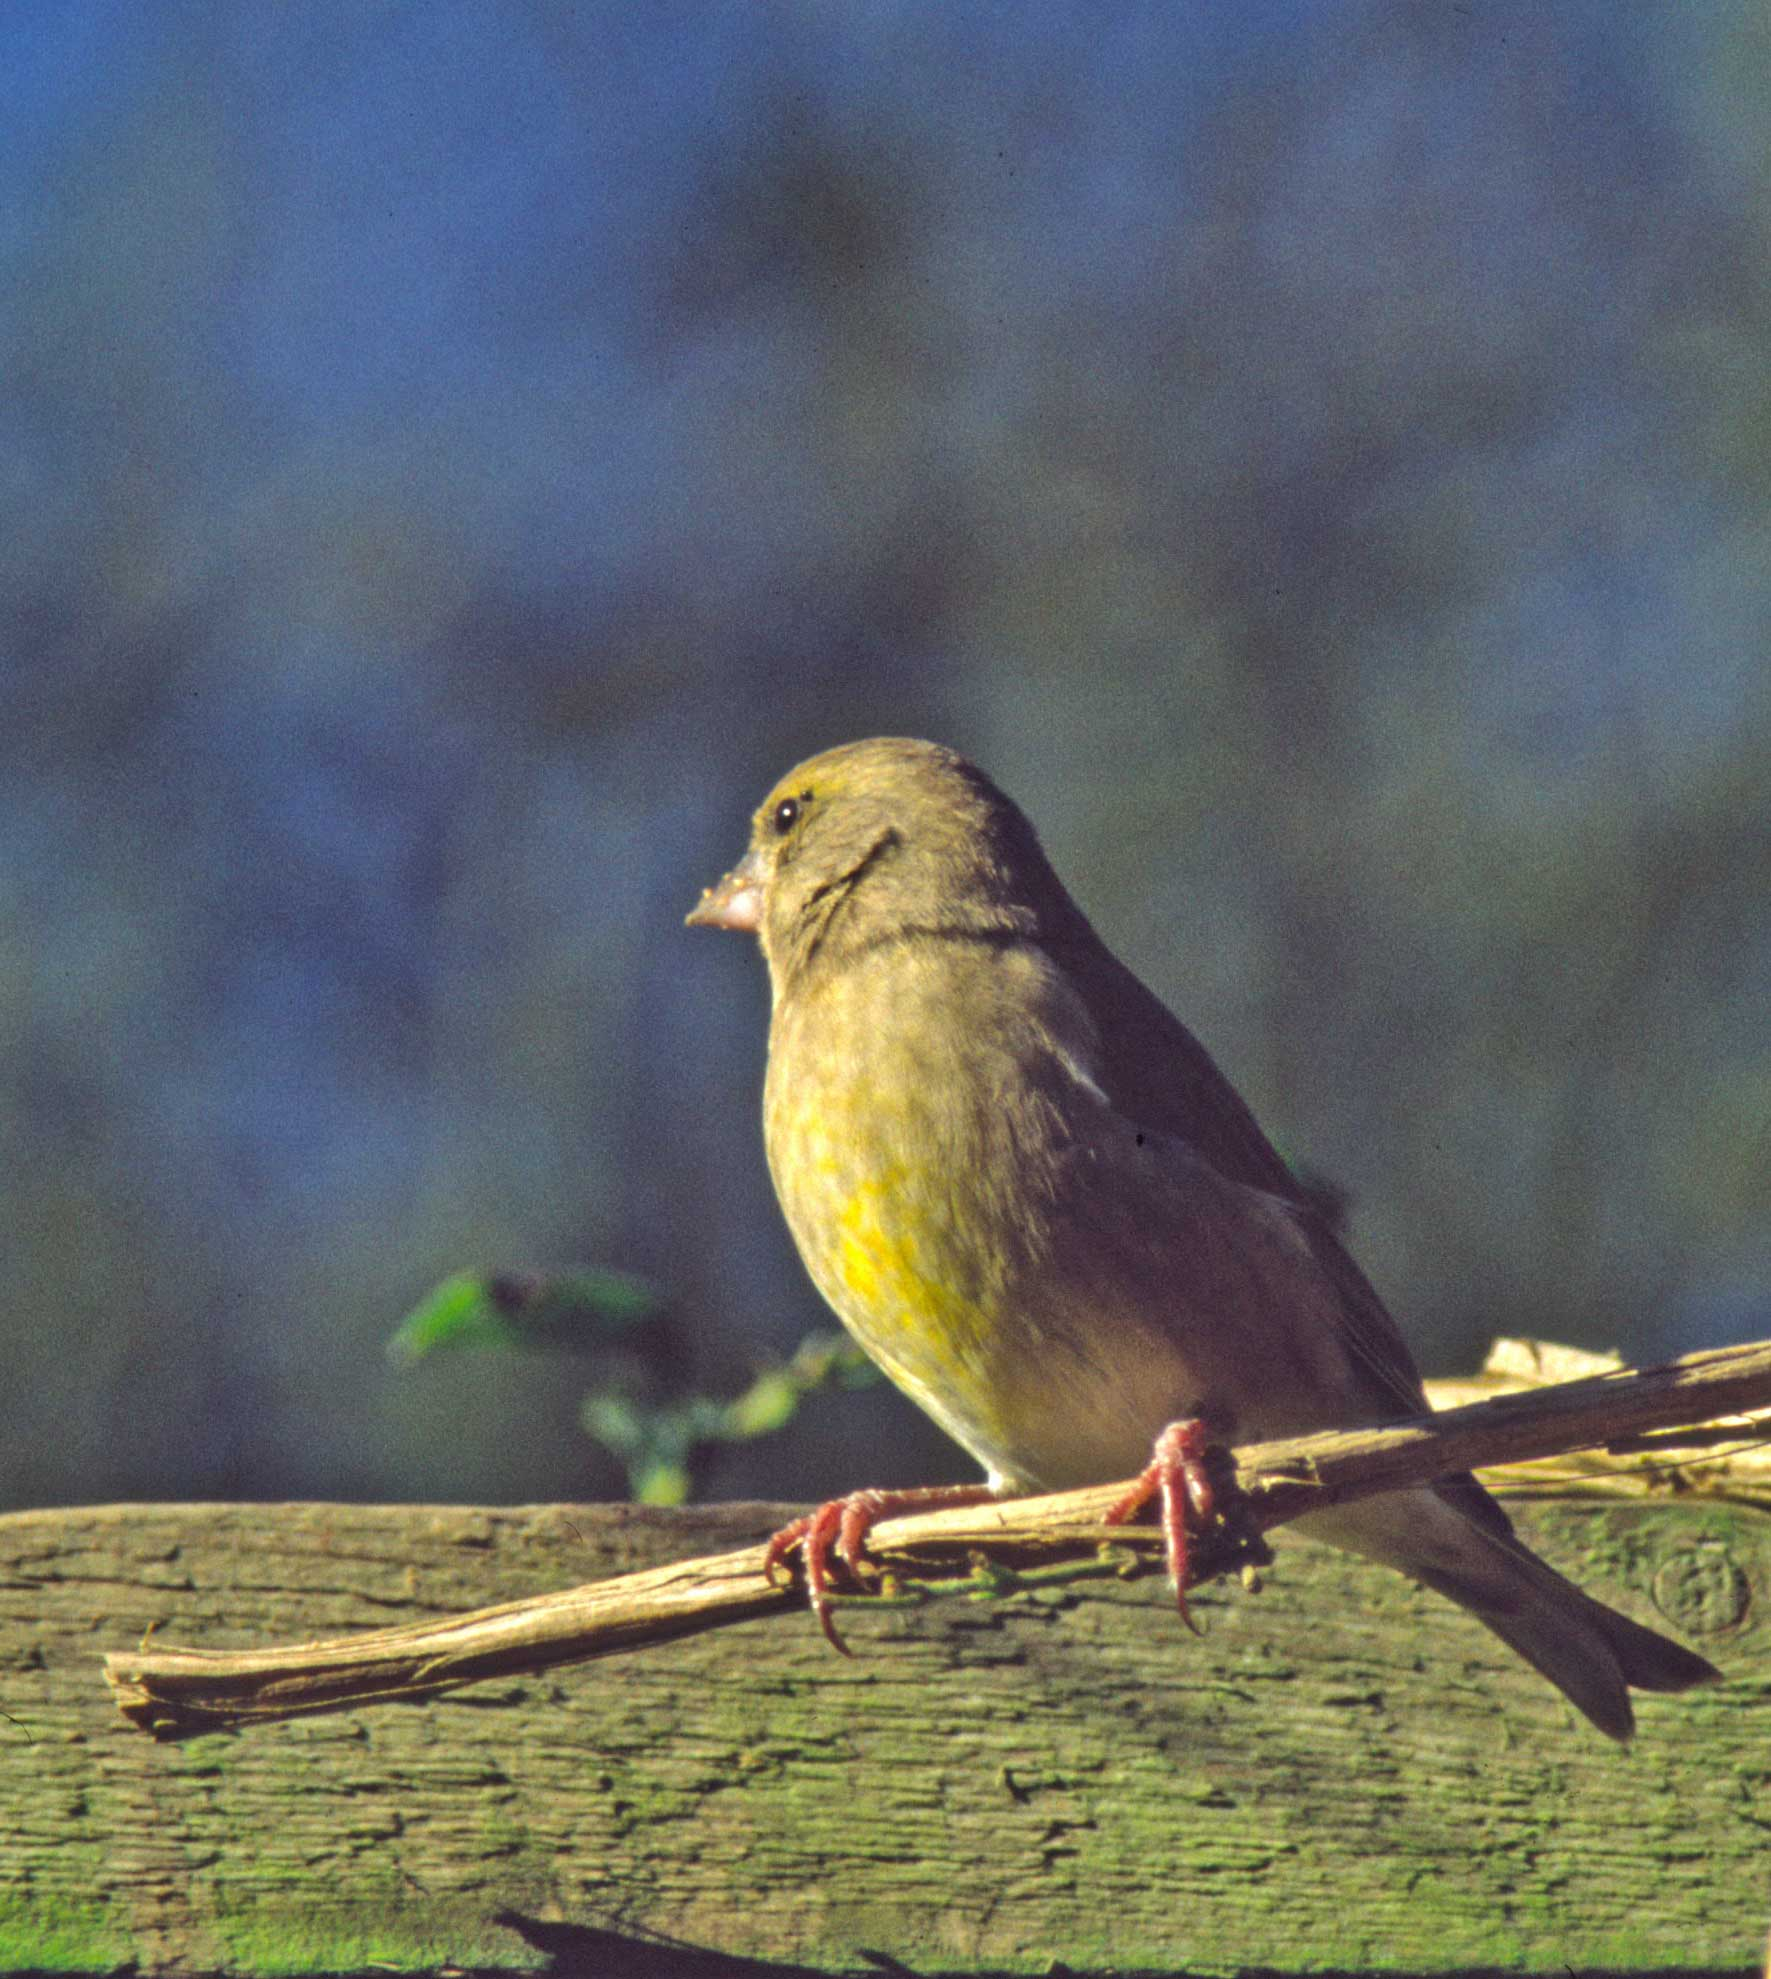 greenfinch perching